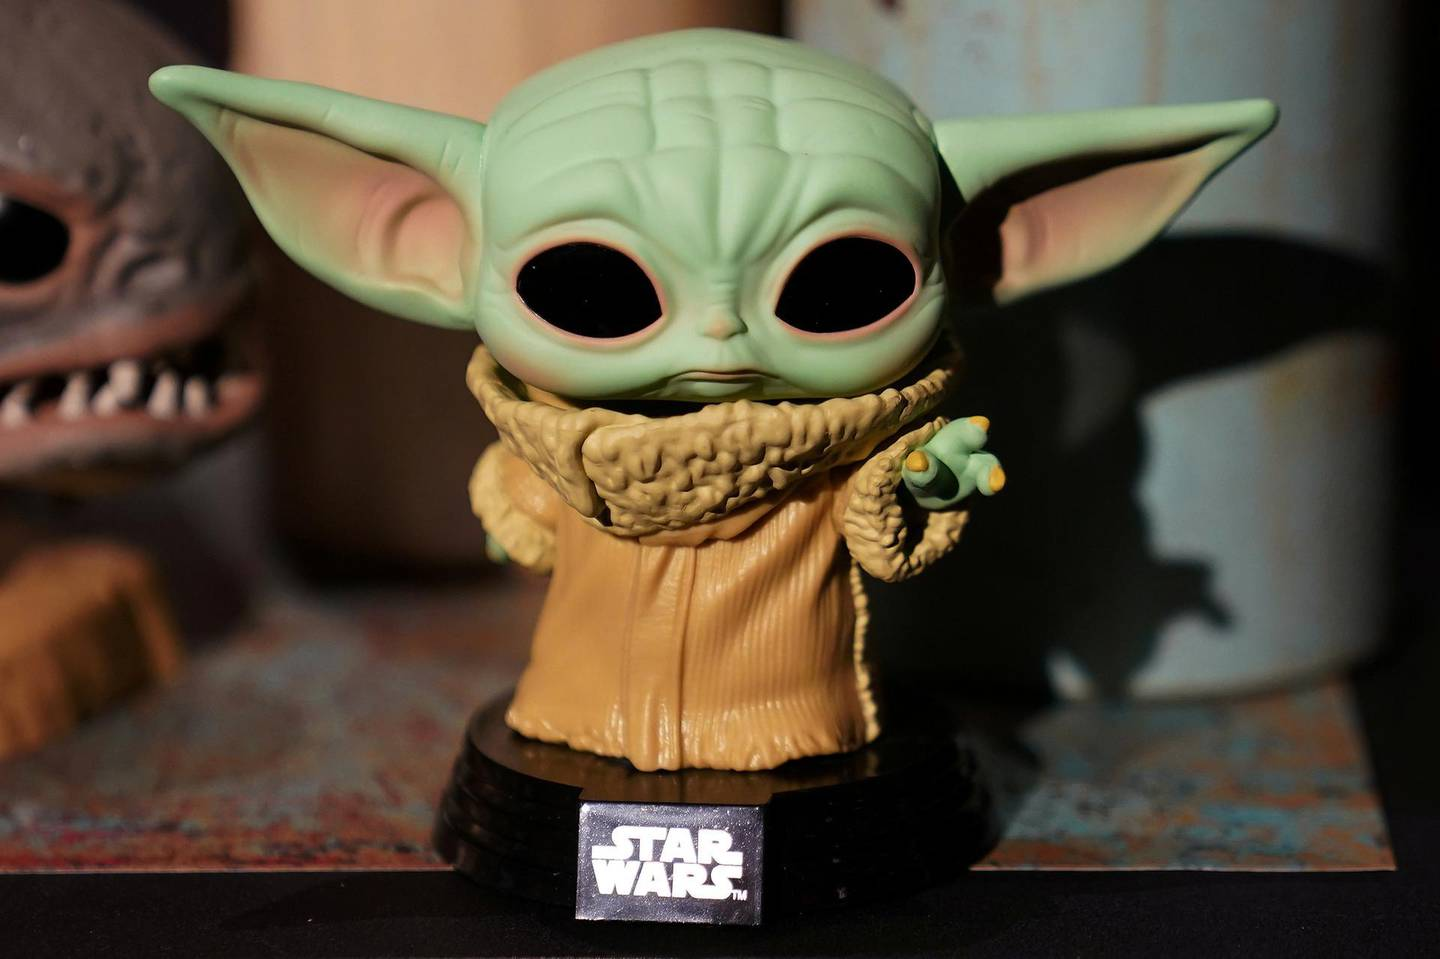 """FILE PHOTO: A Baby Yoda toy is pictured during a """"Star Wars"""" advance product showcase in the Manhattan borough of New York City, New York, U.S., February 20, 2020. REUTERS/Carlo Allegri/File Photo"""